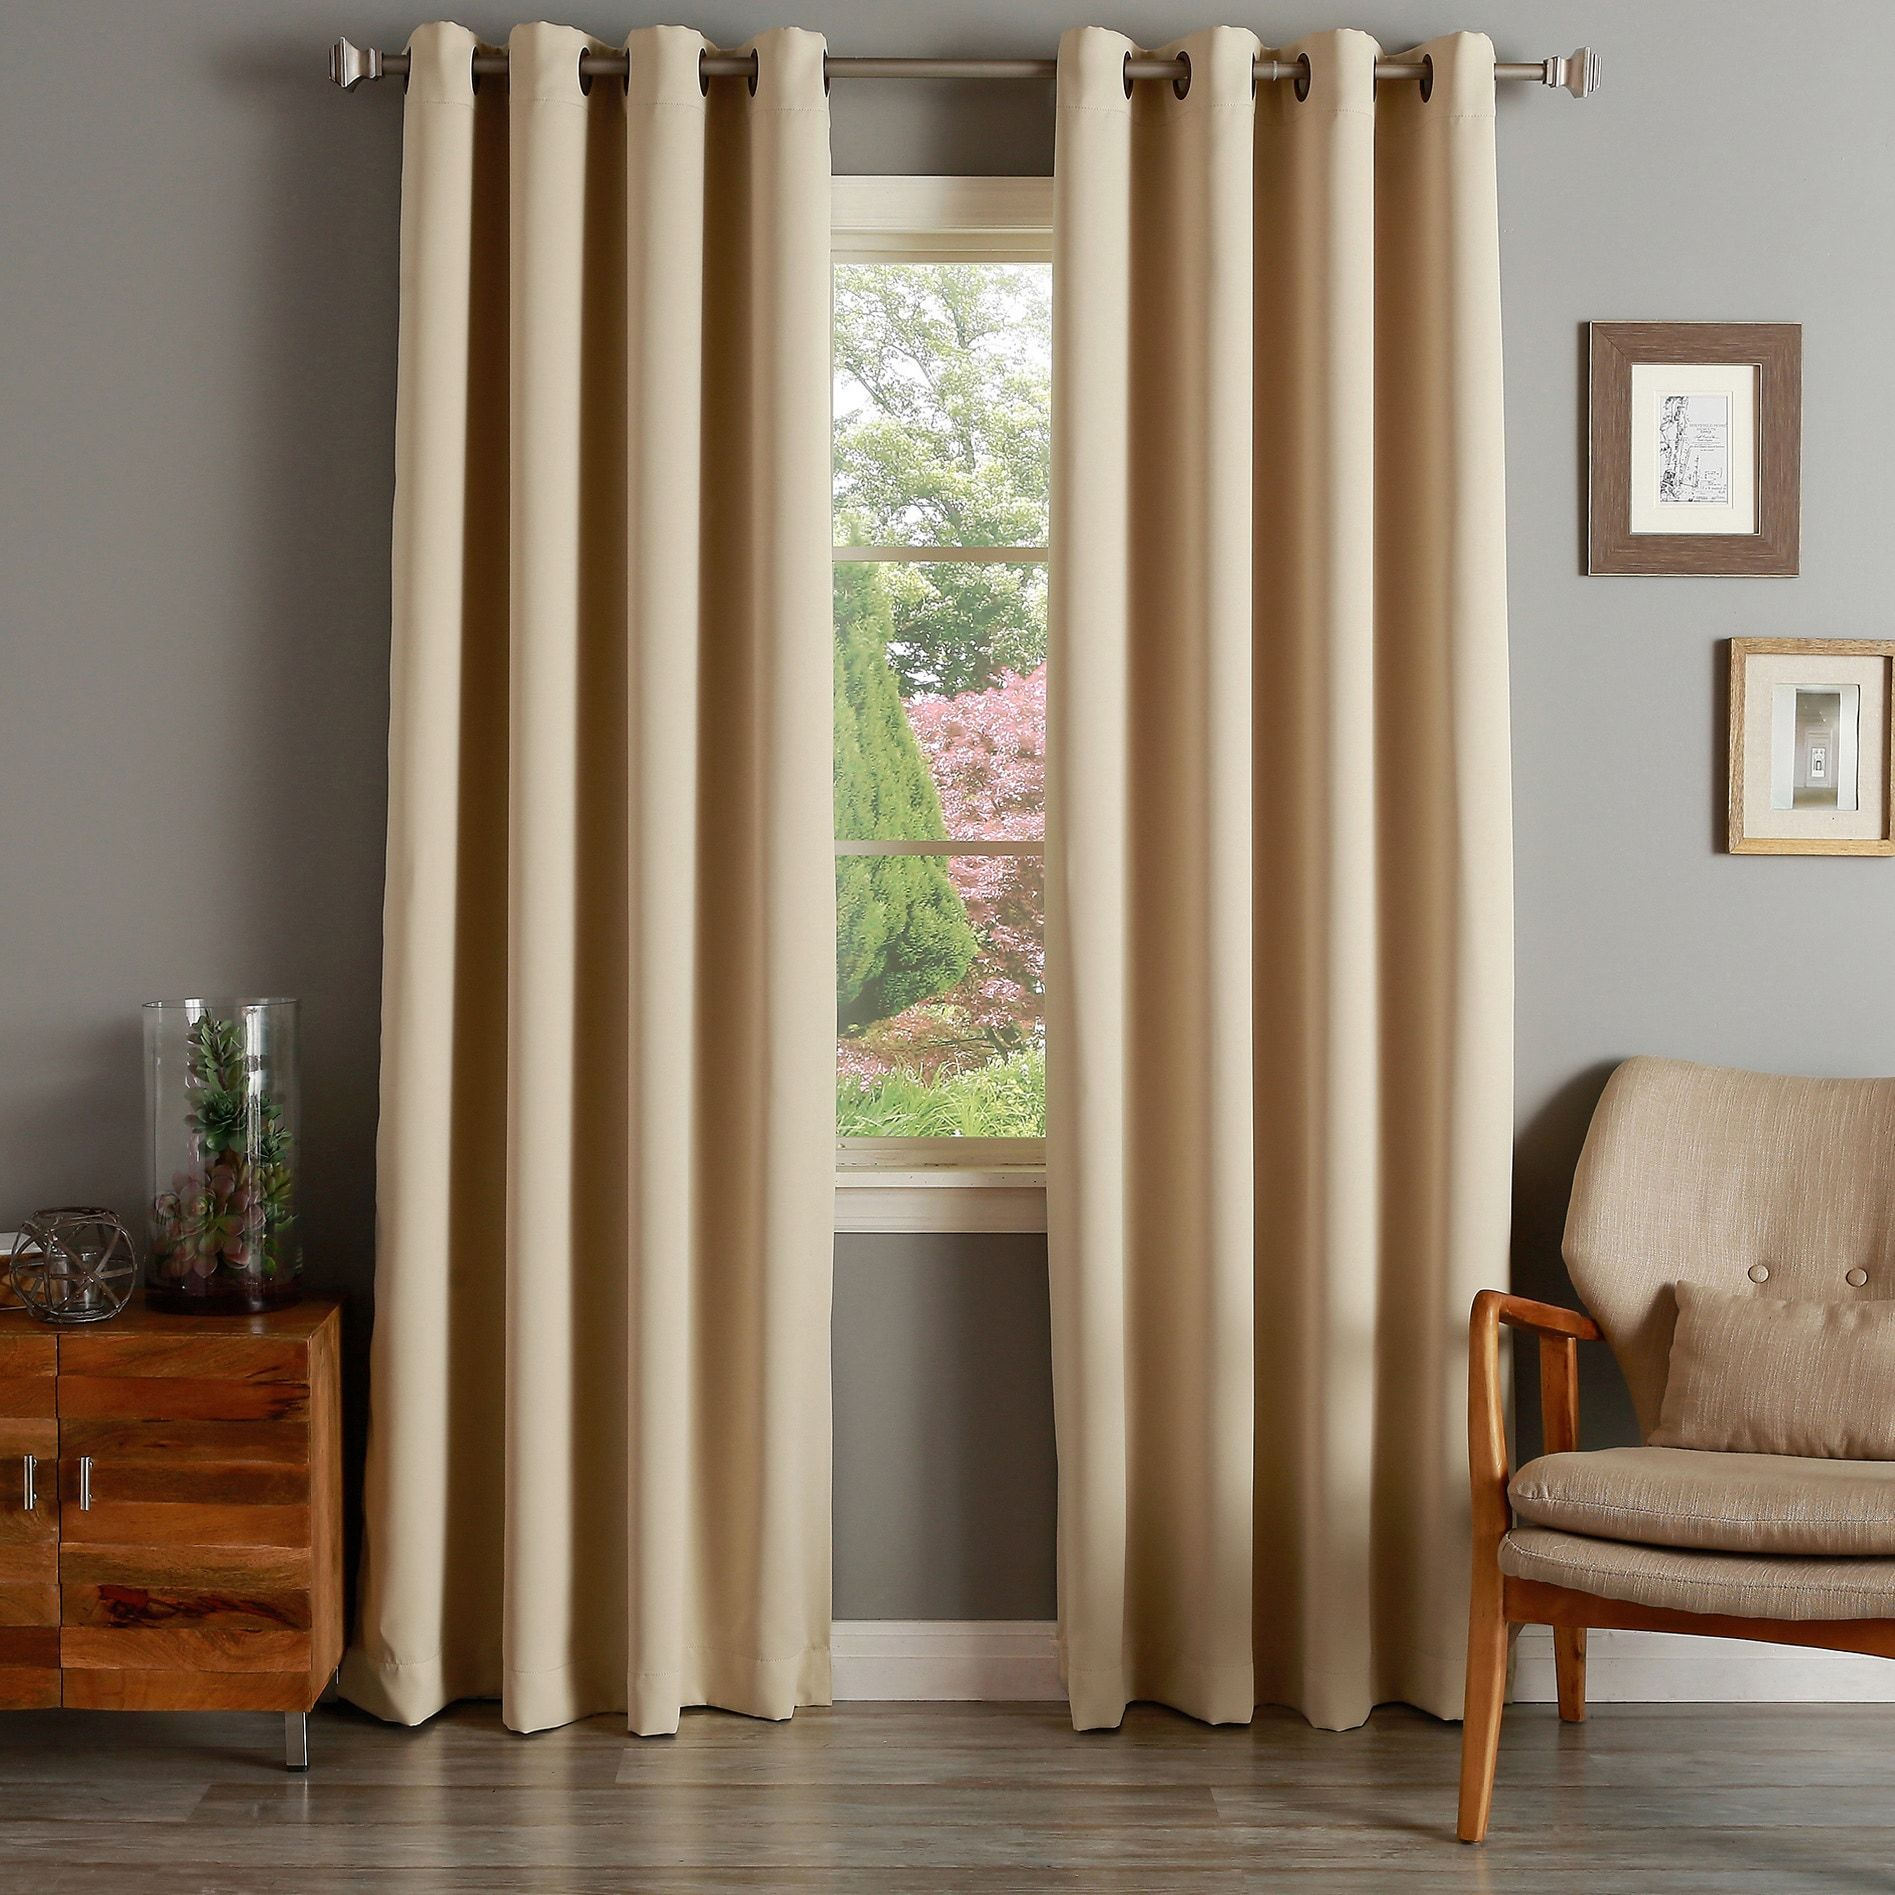 Aurora Home Grommet Top Thermal Insulated 96 Inch Blackout Inside Thermal Insulated Blackout Curtain Panel Pairs (View 10 of 30)